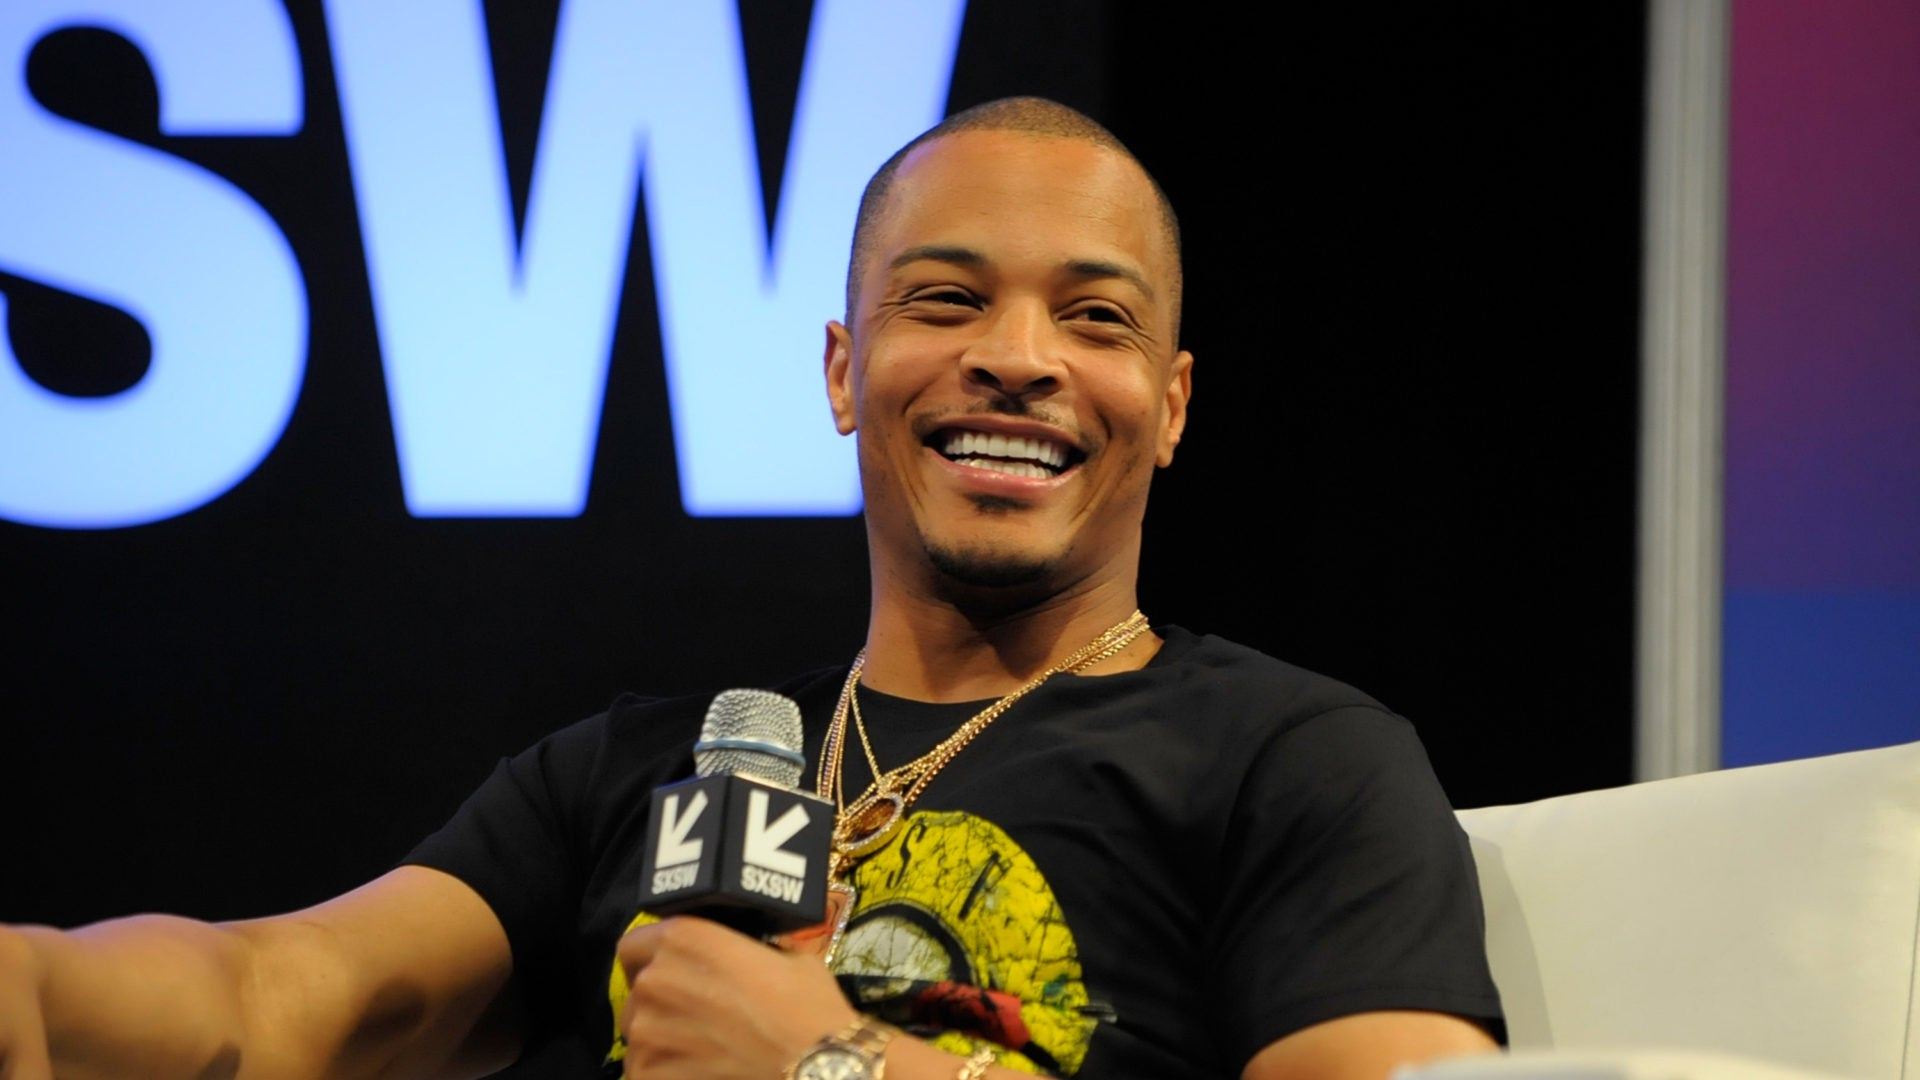 T.I. Recognized By Georgia Senate For His Philanthropy Efforts